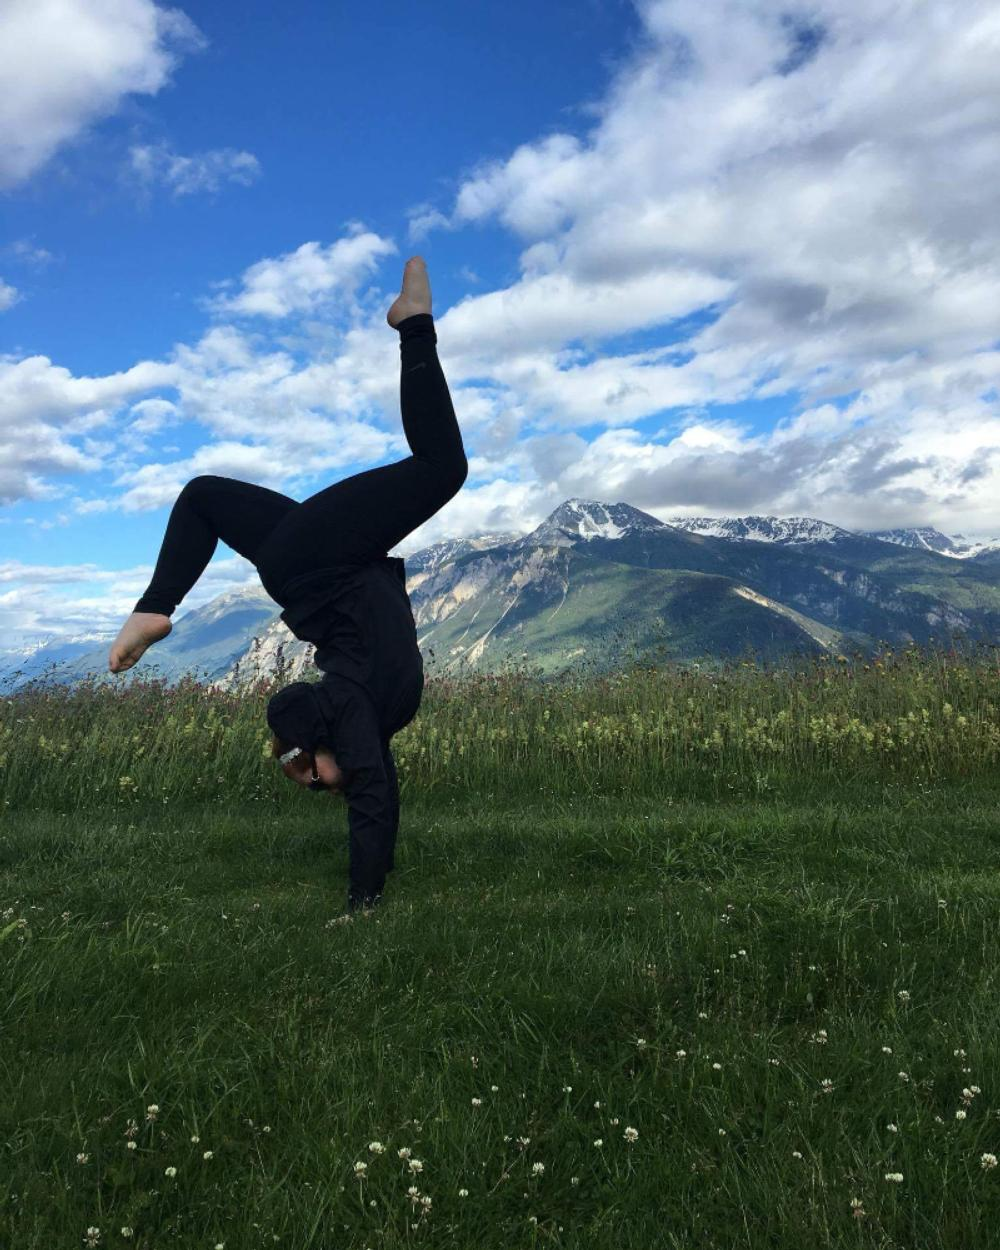 Student doing a handstand in a field with a mountain in the background